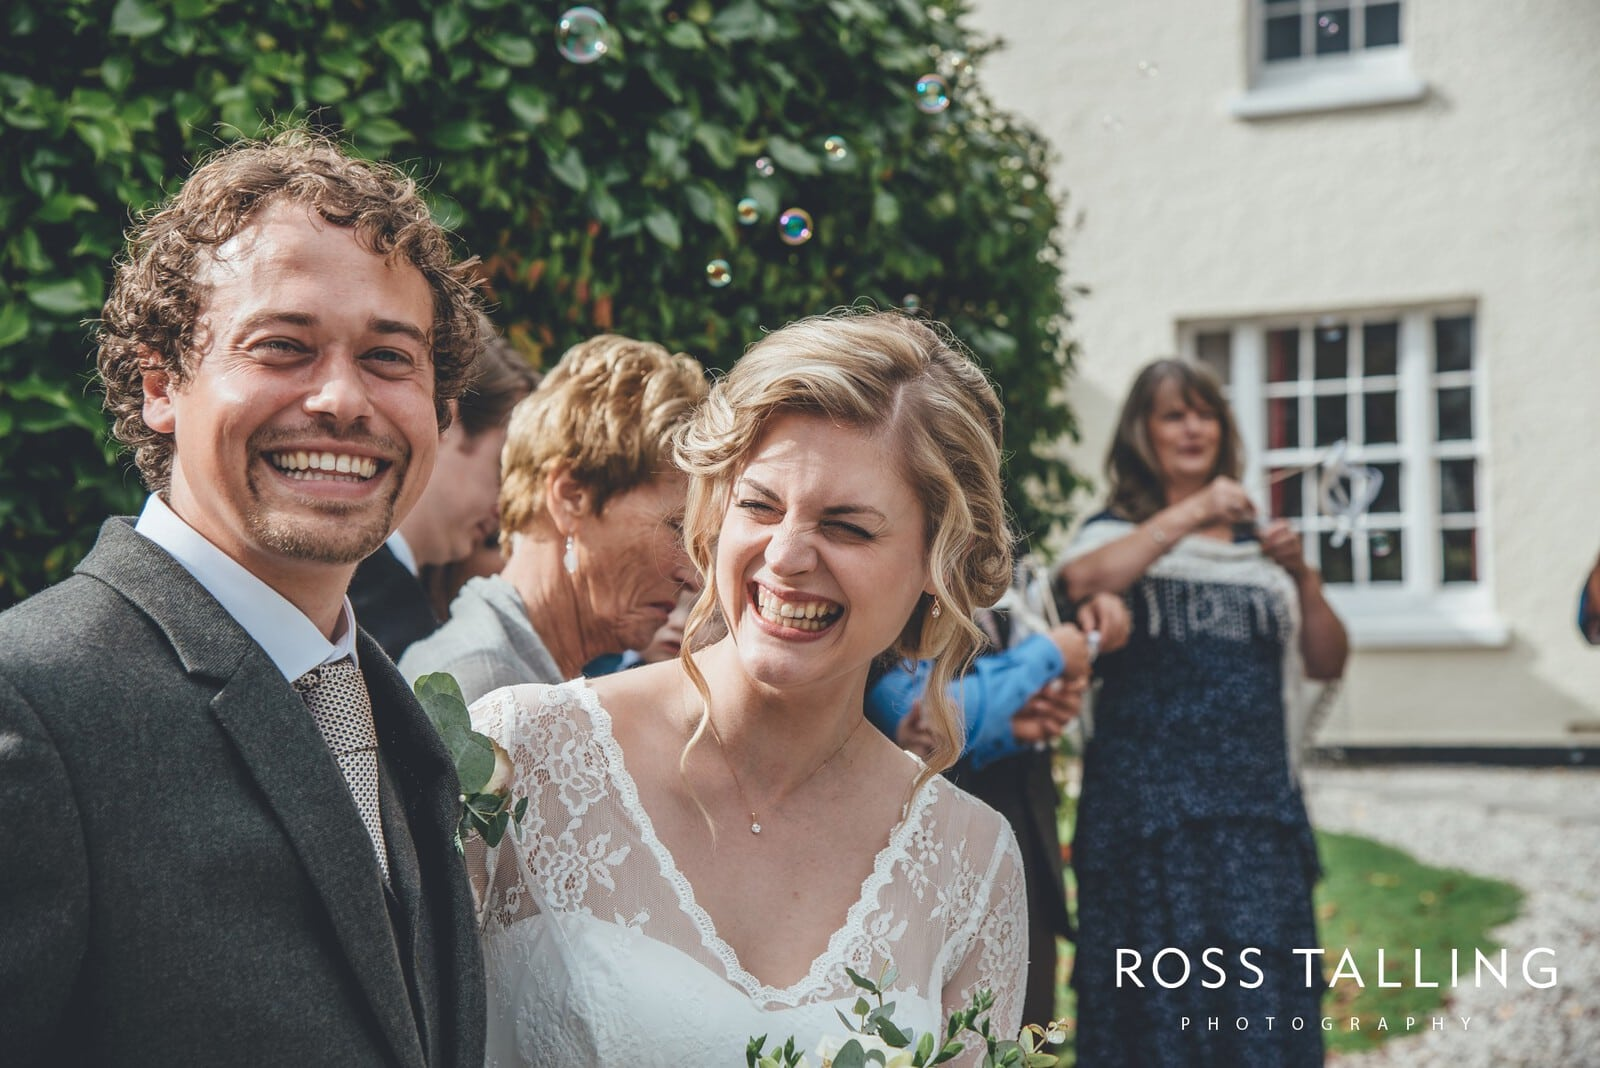 Wedding Photography at The Green Cornwall by Ross Talling_0037